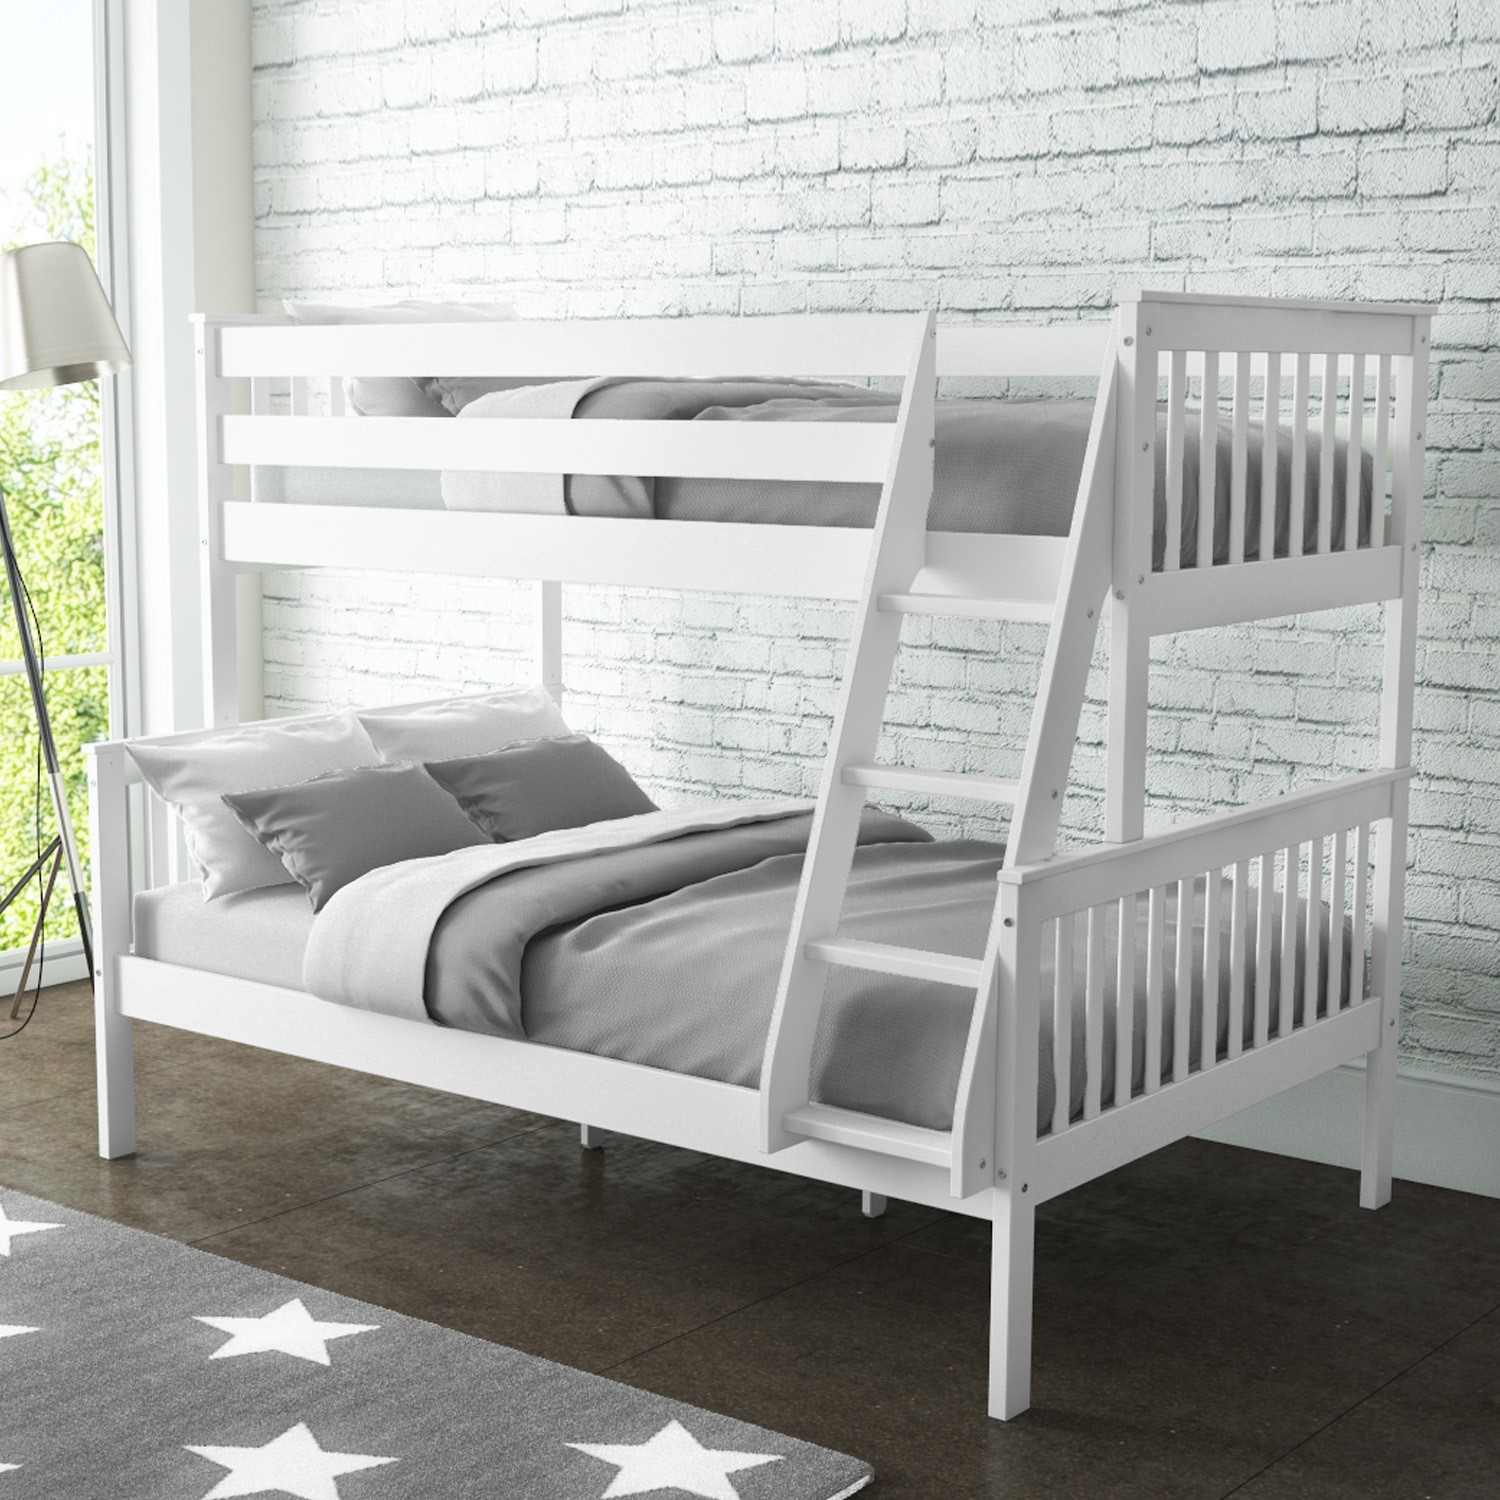 Double Bunk Beds New High Quality Oxford Triple Bunk Bed In White Small